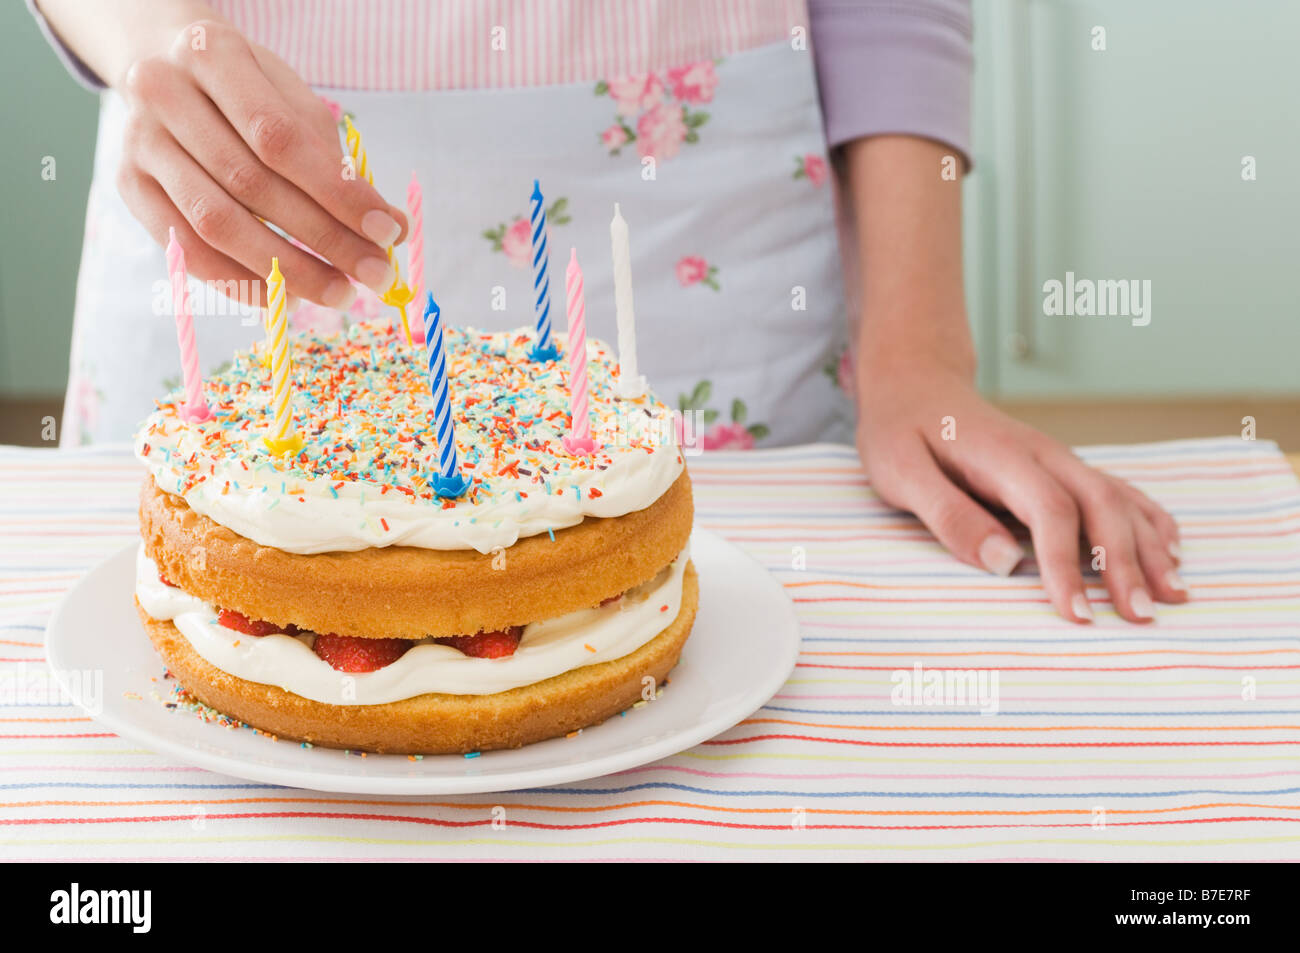 Woman with birthday cake - Stock Image